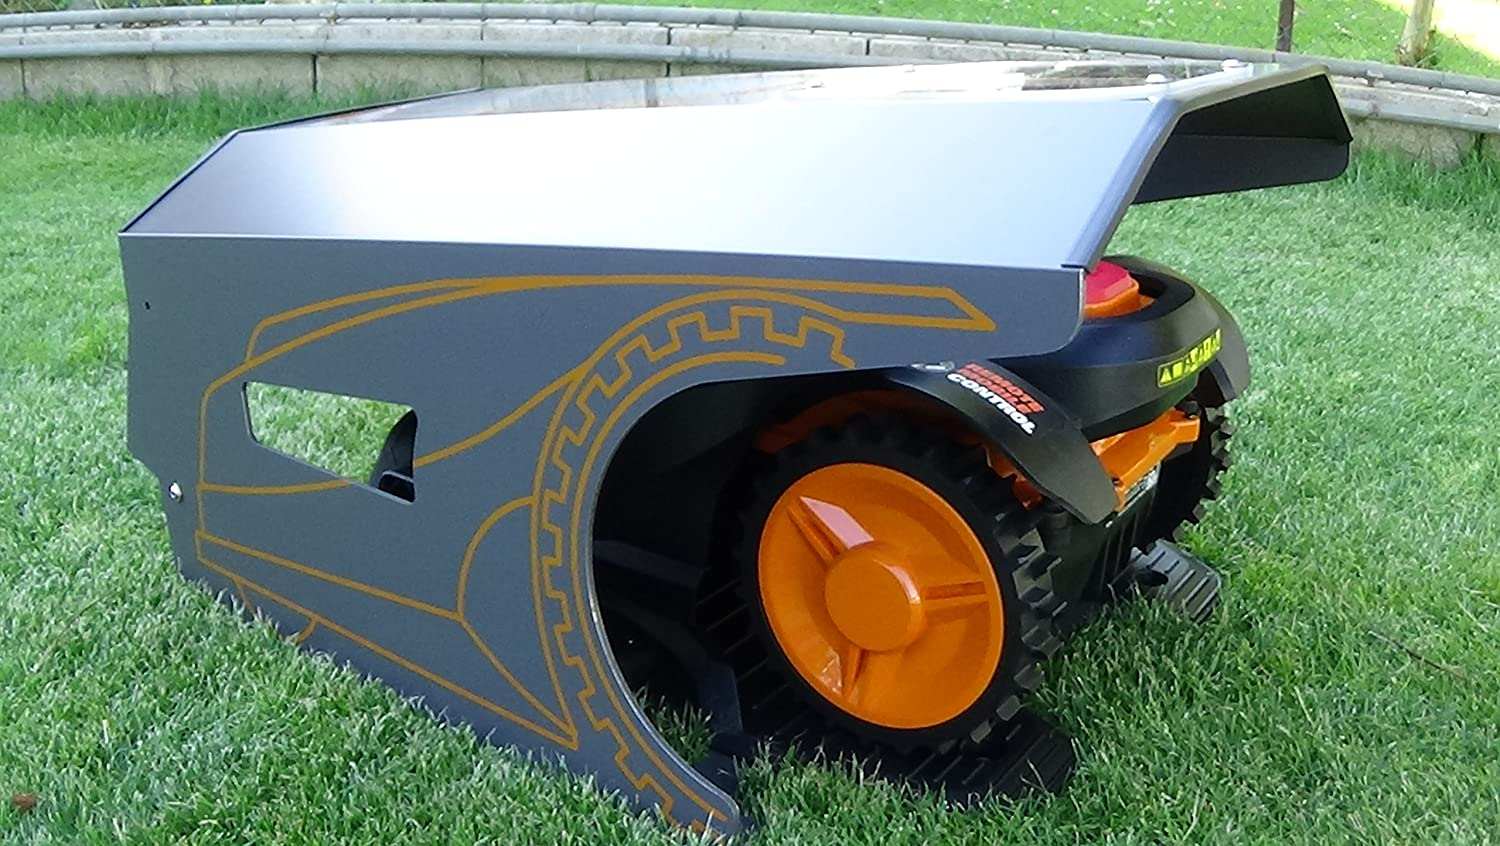 Idea Mower Garage Worx Landroid M Robot Cortacésped Garage ...